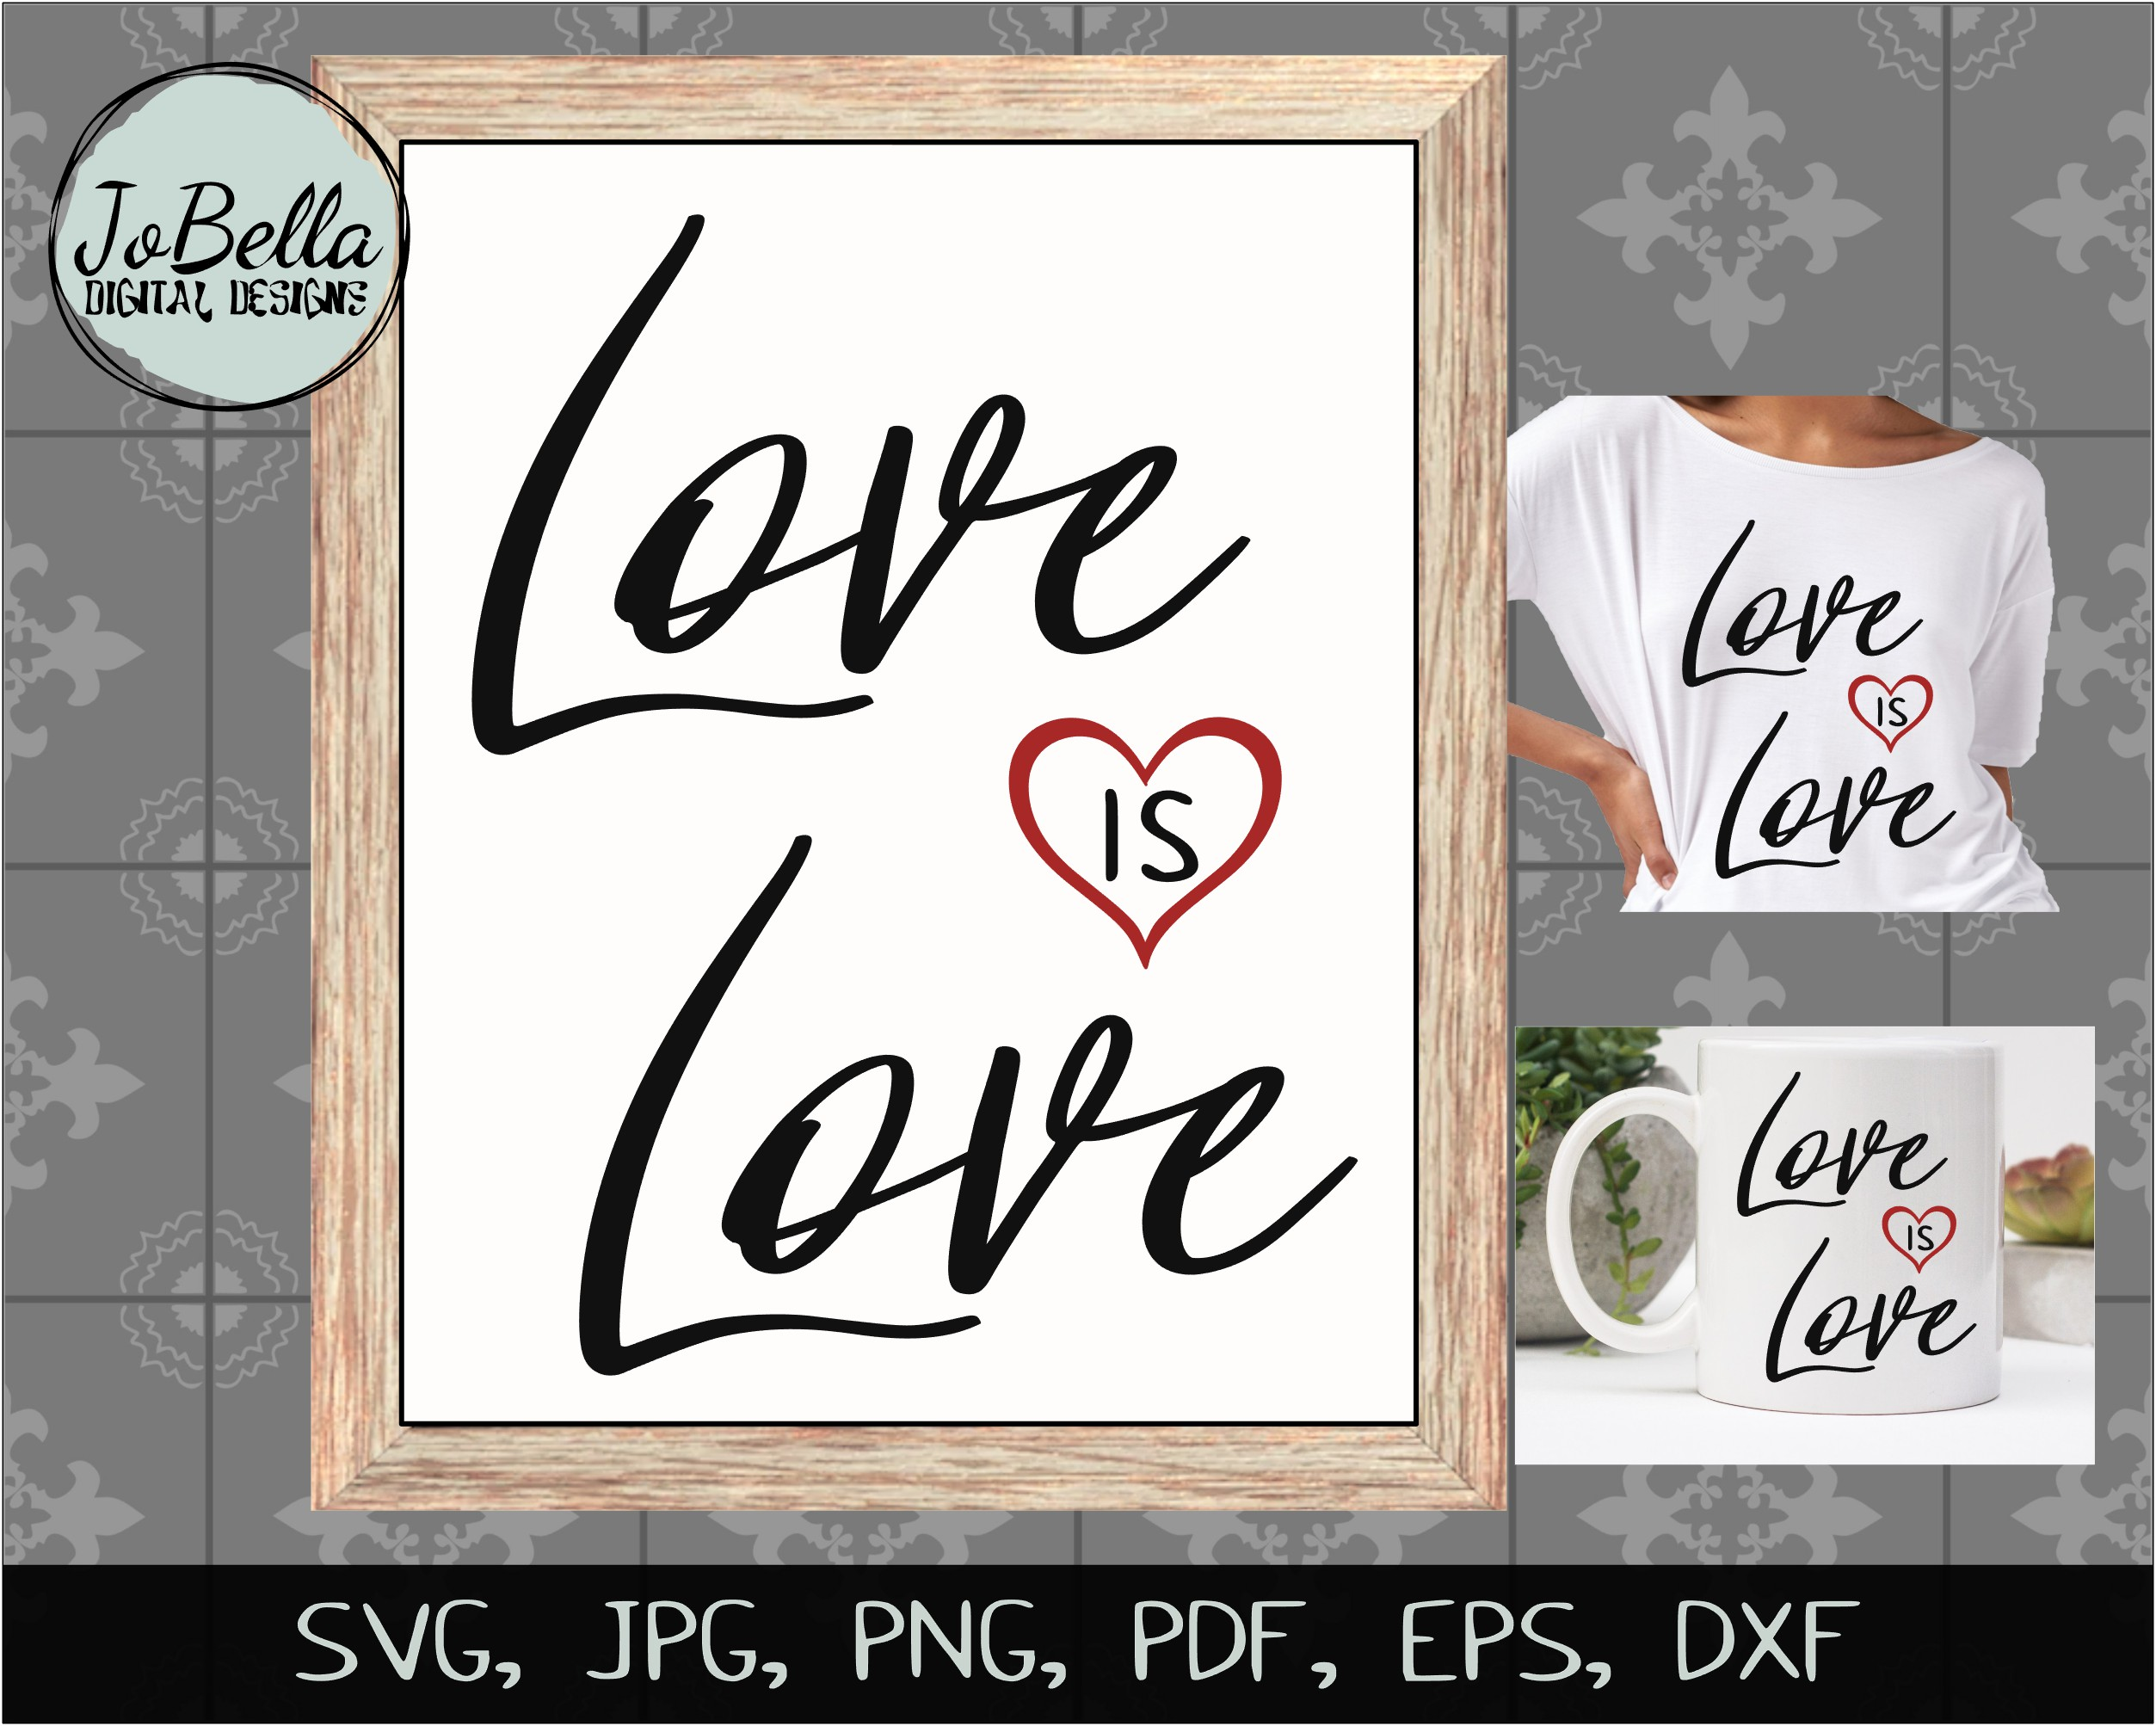 Love Is Love SVG, Sublimation PNG and Printable Design example image 2